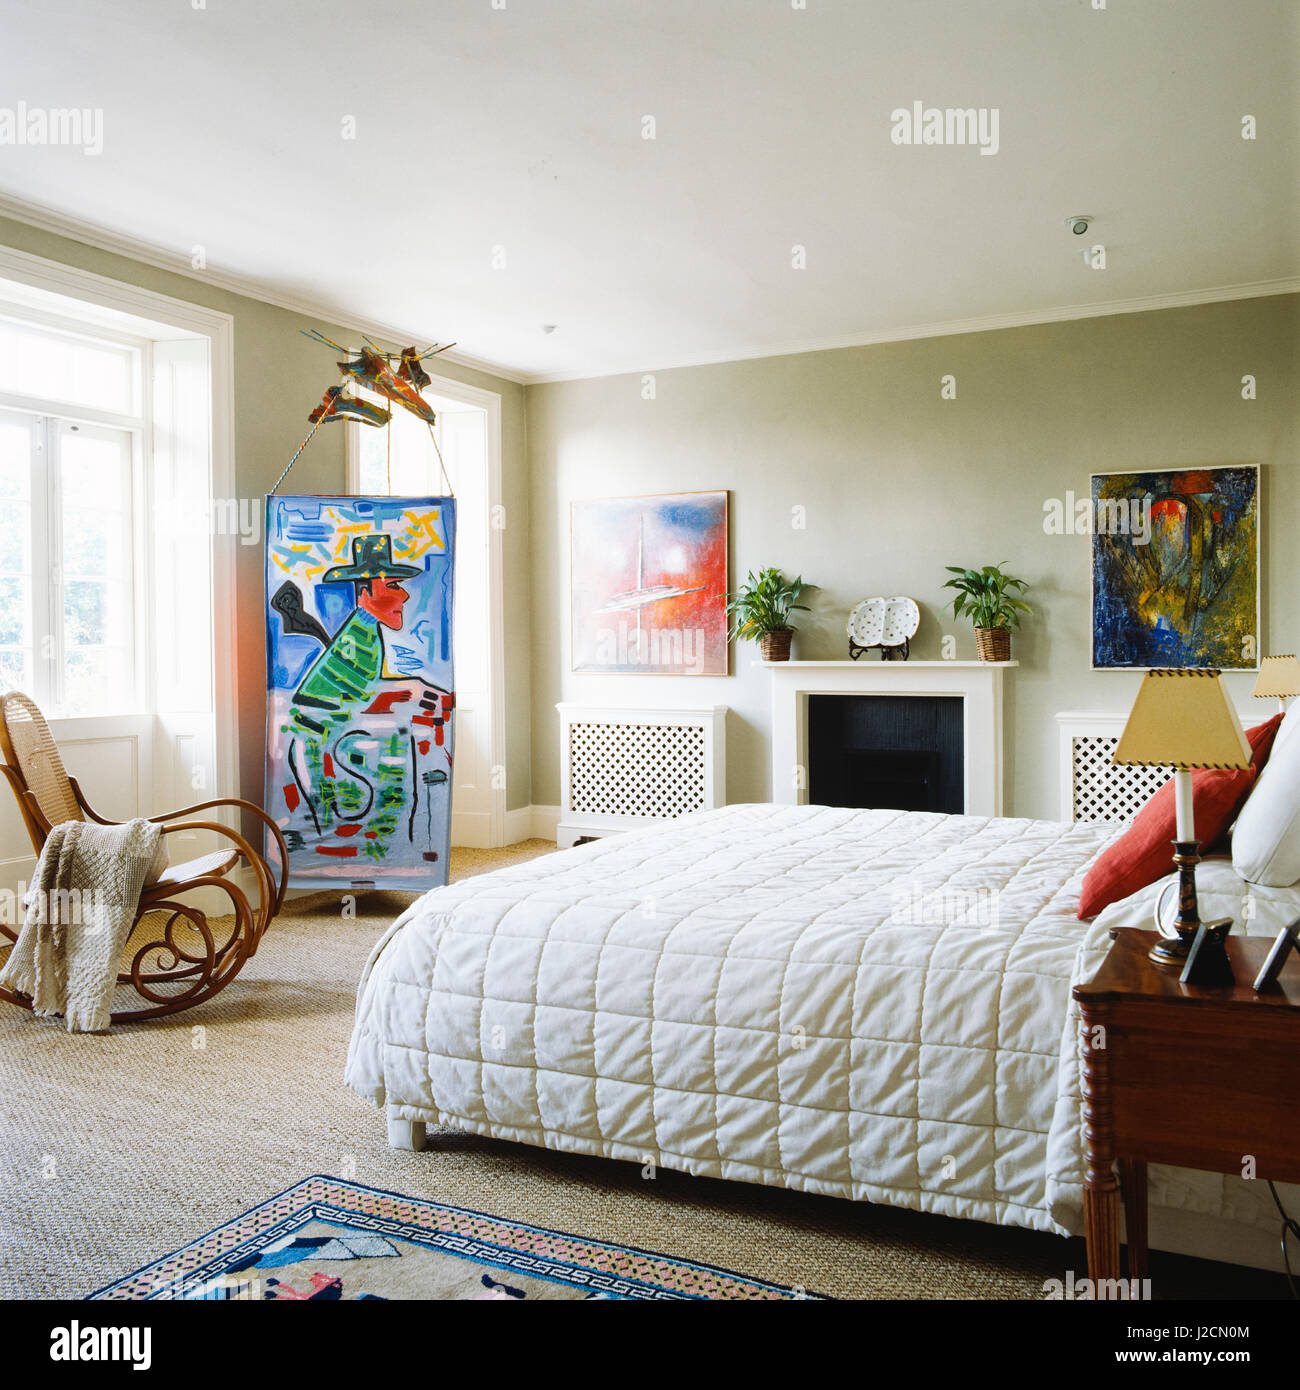 Bedroom decorated with contemporary art. - Stock Image